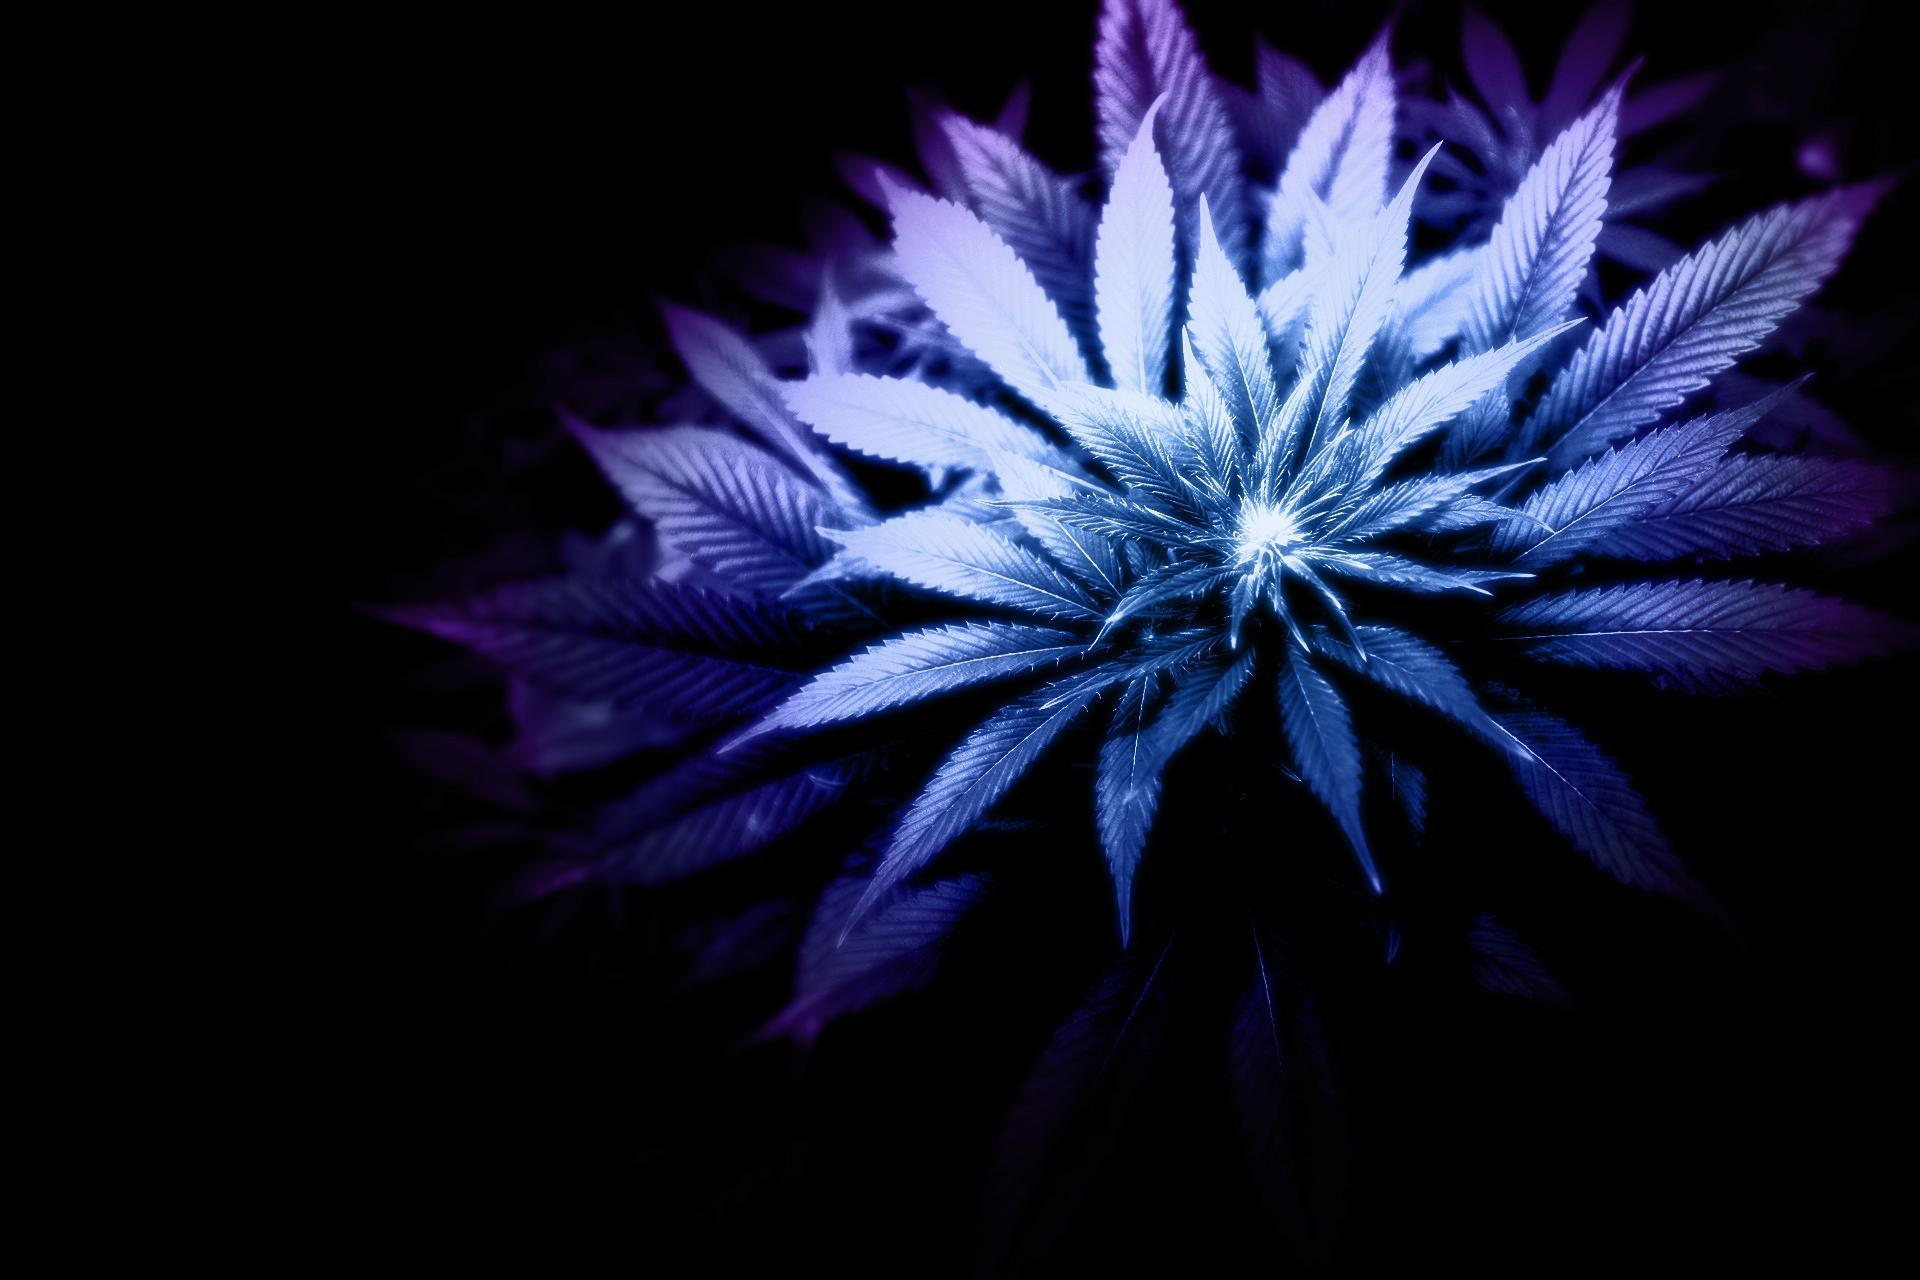 cannabis plant wallpaper black - photo #34